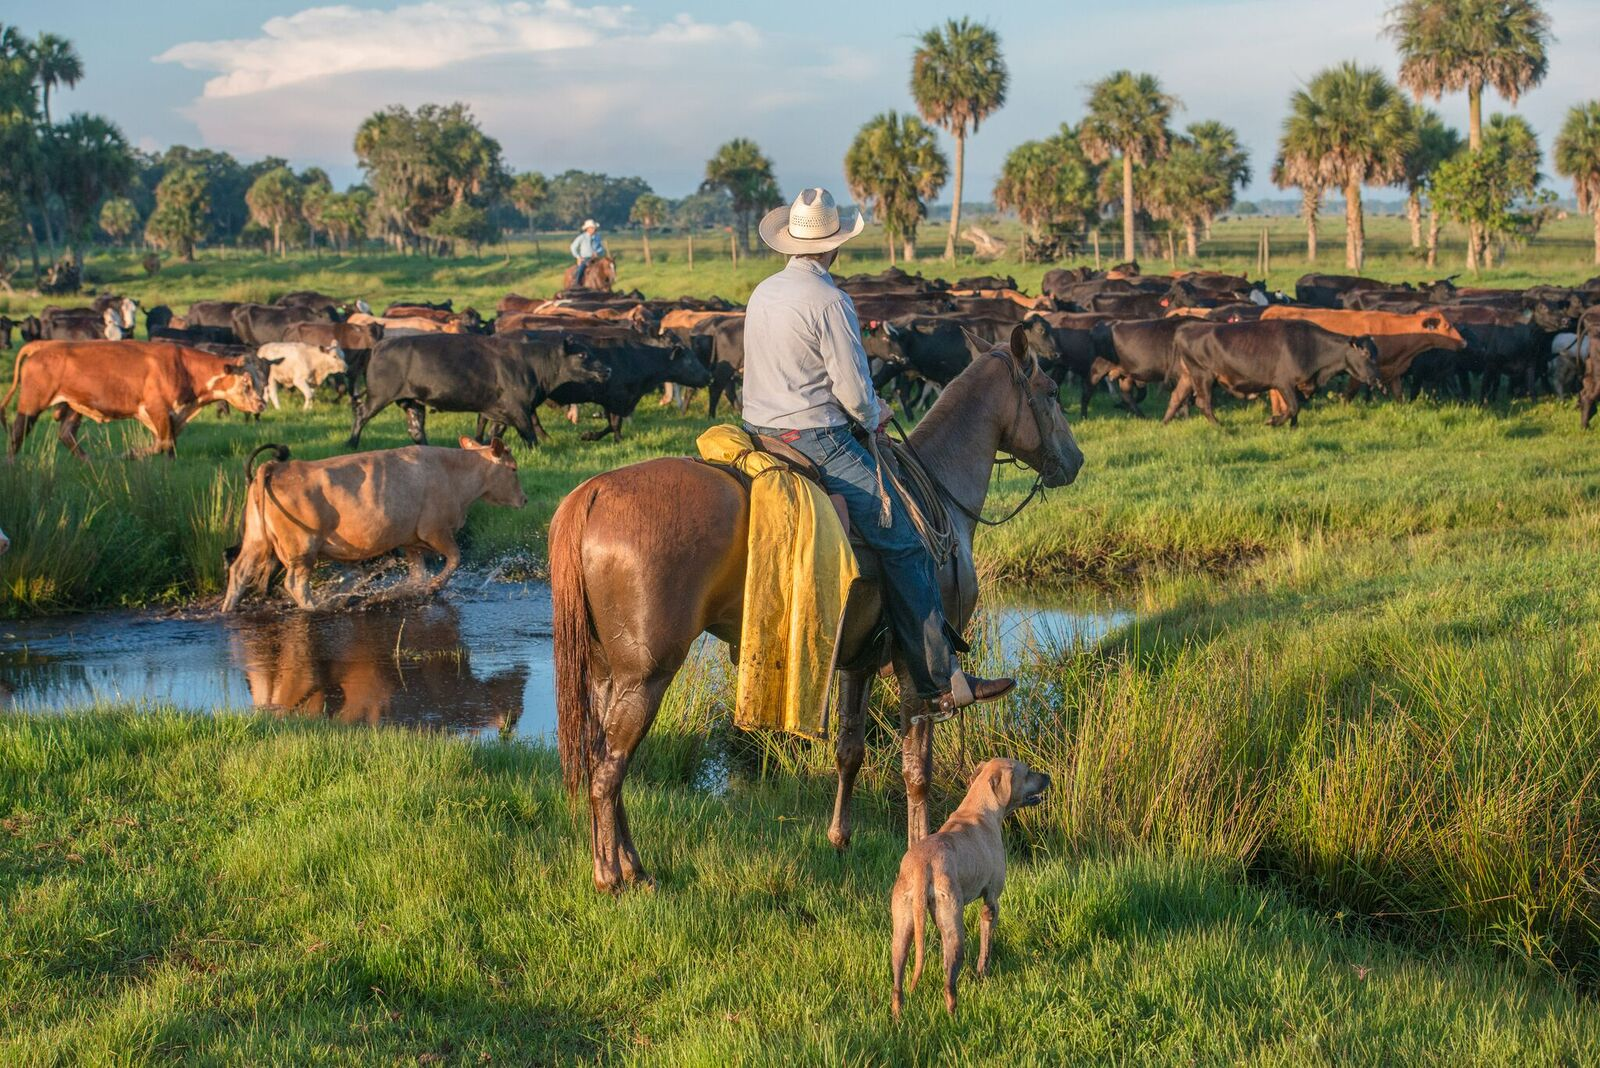 A cowboy herds cattle on an improved pasture